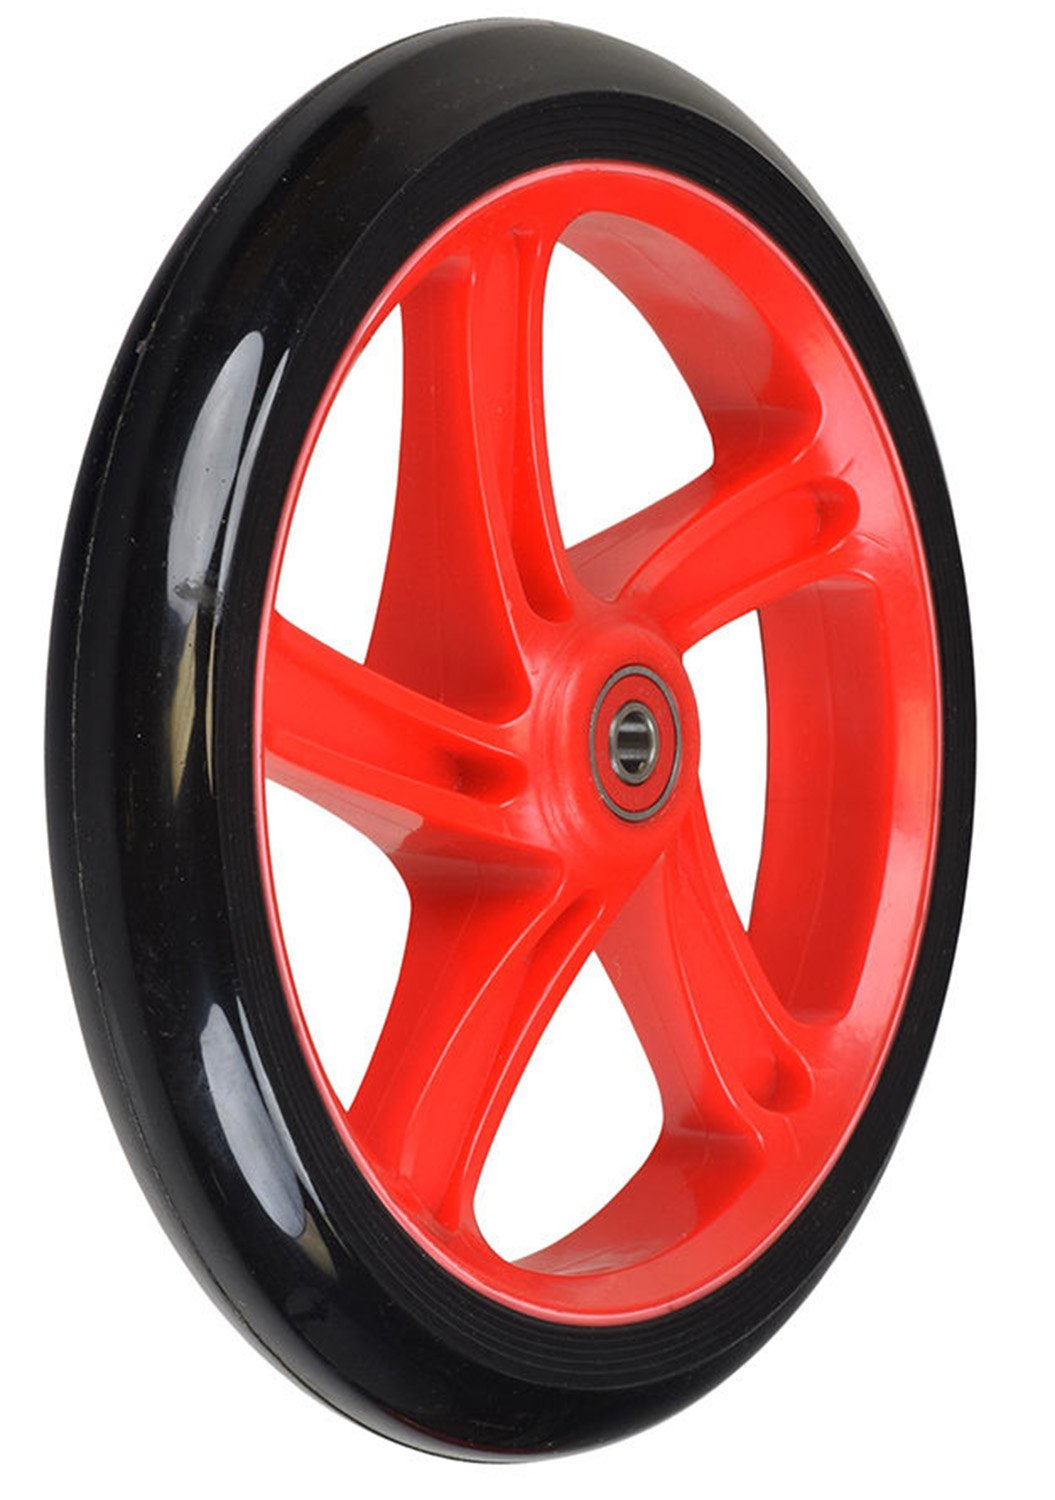 Replacement Wheel for the Razor A5 Lux Kick Scooter 200 mm (8'): Black Wheel with RED Hub